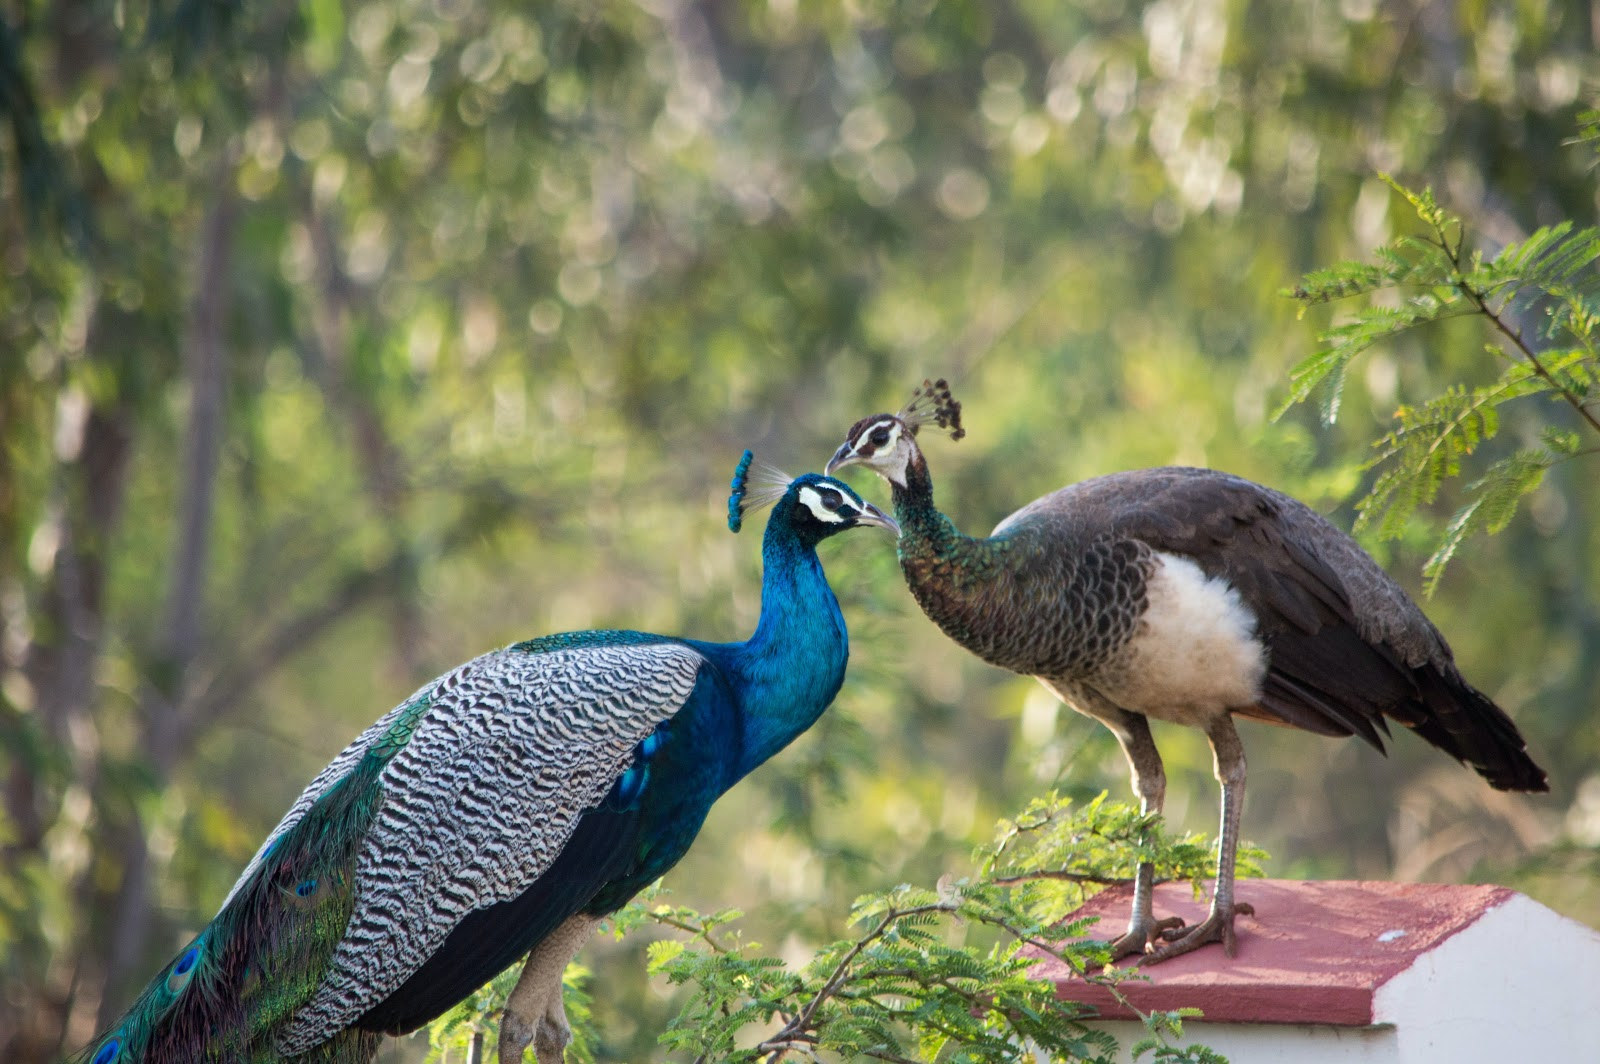 peacock-and-peahen-together-images